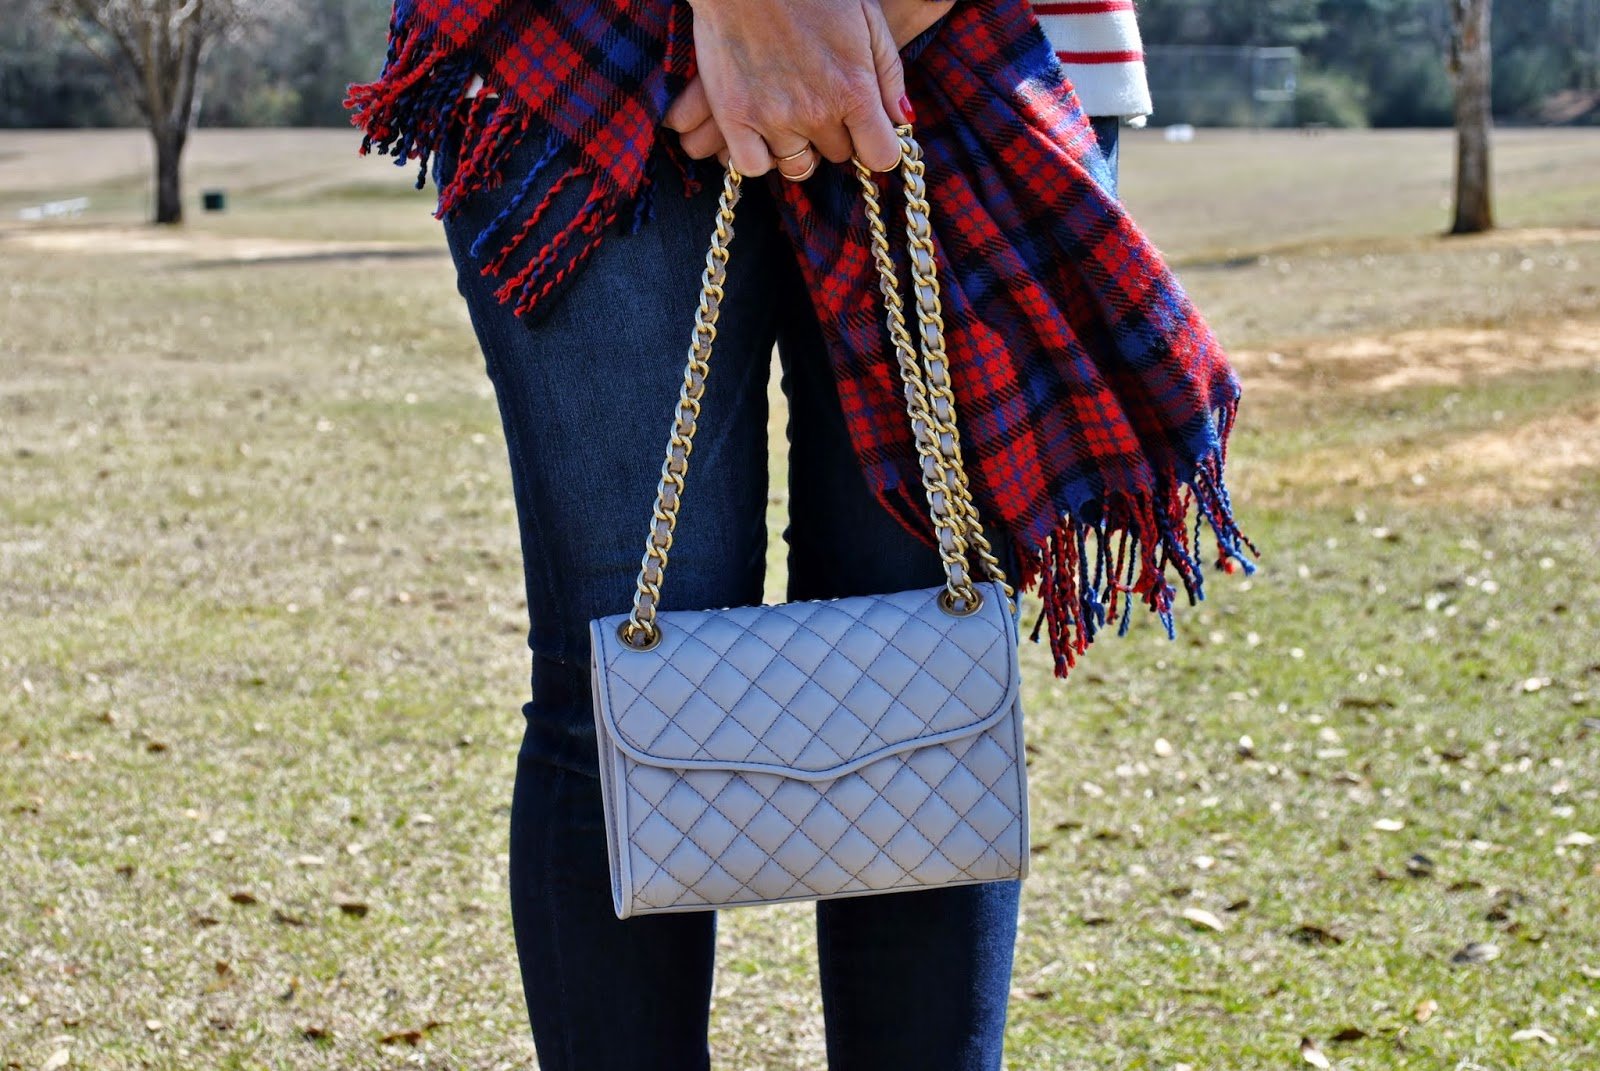 J Crew Striped Sweater, J Crew plaid Scarf, Rebecca Minkoff Quilted Affair Handbag, Madewell Skinny Jeans, Sunshine and Sequins Blog